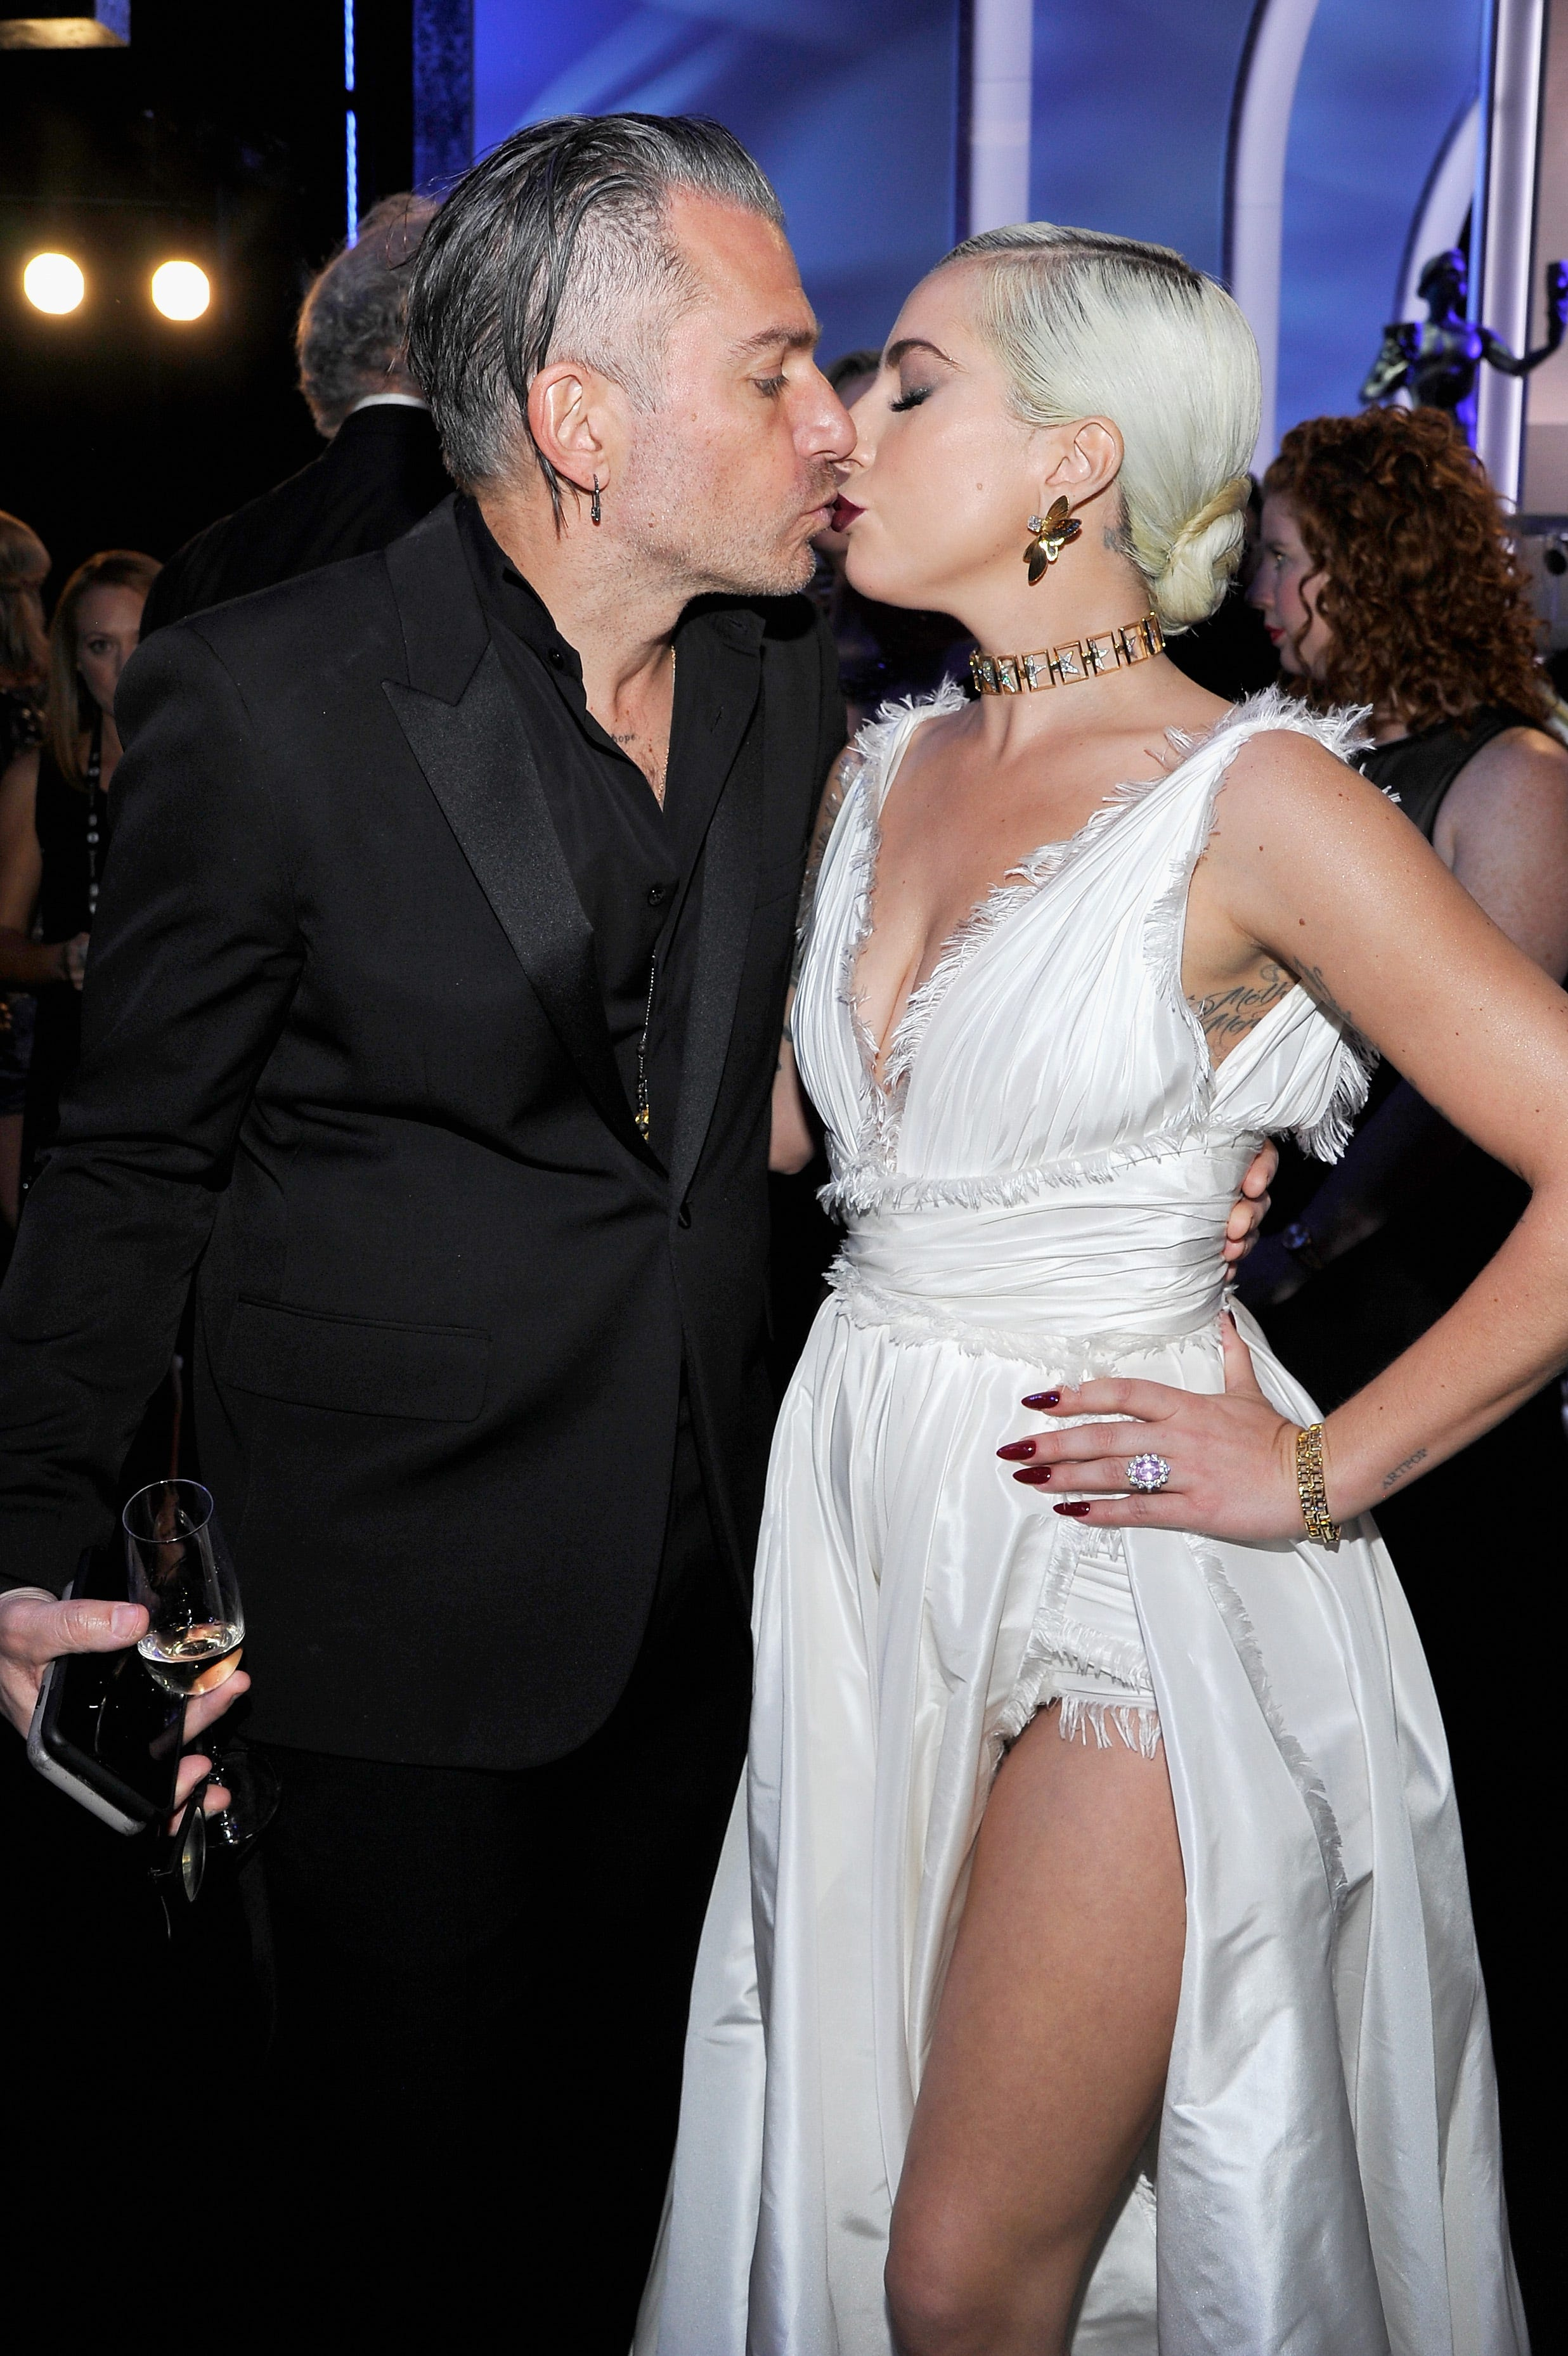 Lady Gaga and Christian Carino call off their engagement ahead of the Academy Awards